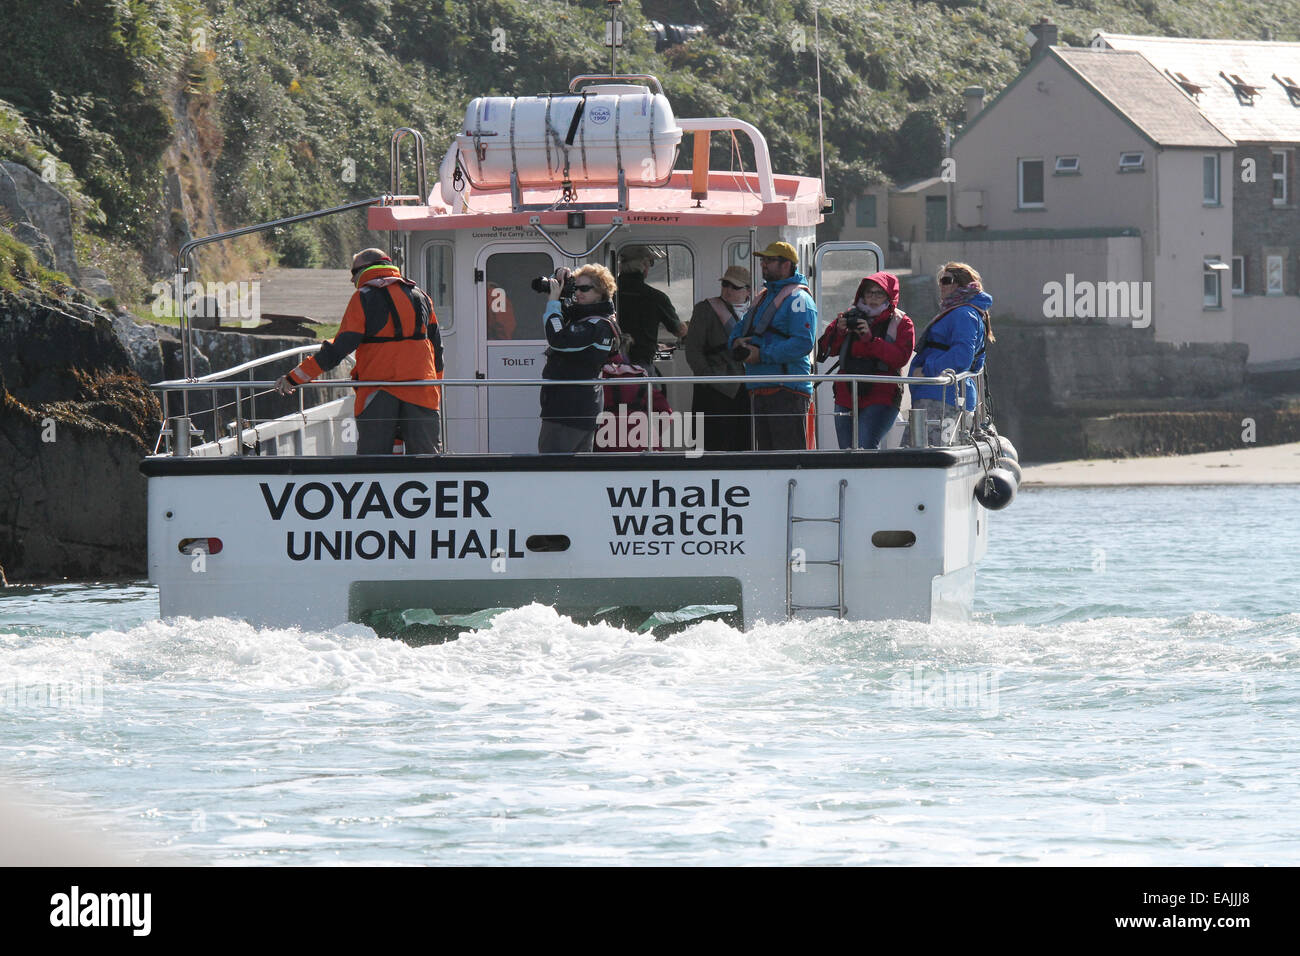 Nic Slocum's vessel 'Voyager' on a whale watching and sight seeing trip entering the harbour at Cape - Stock Image